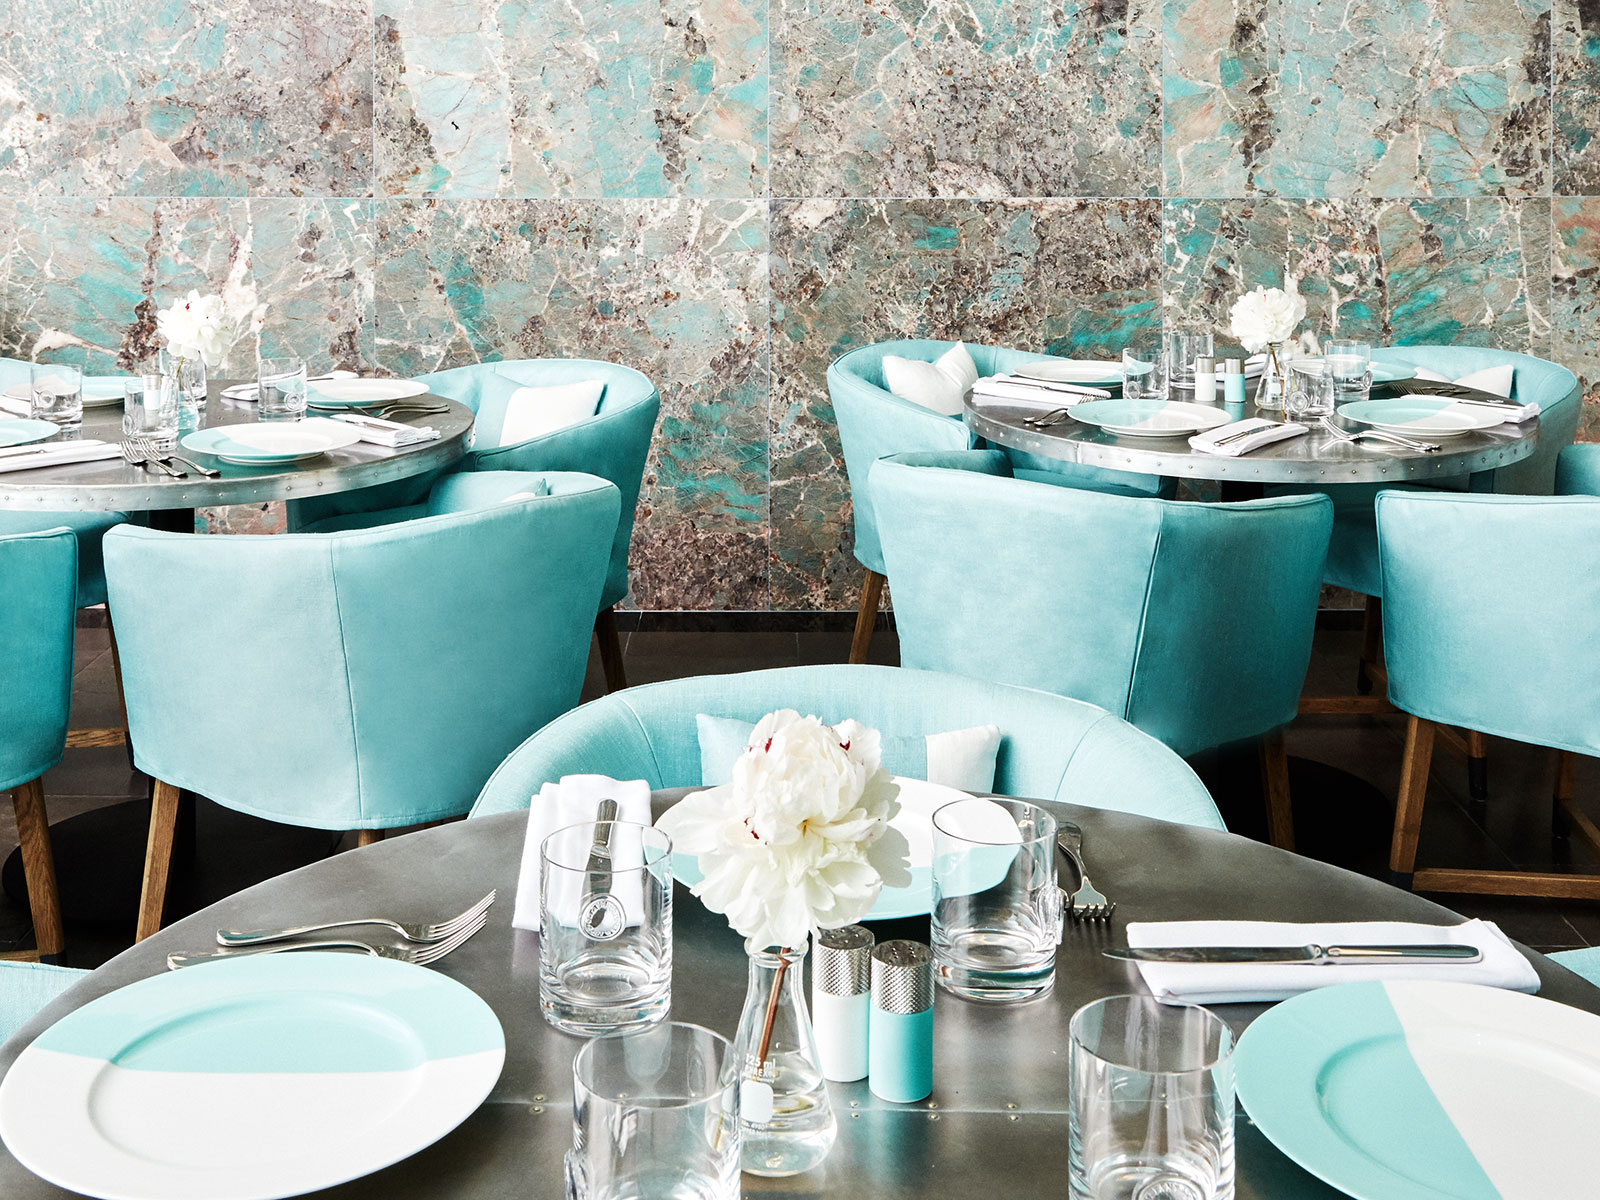 You Can ACTUALLY Have Breakfast At Tiffany's Now